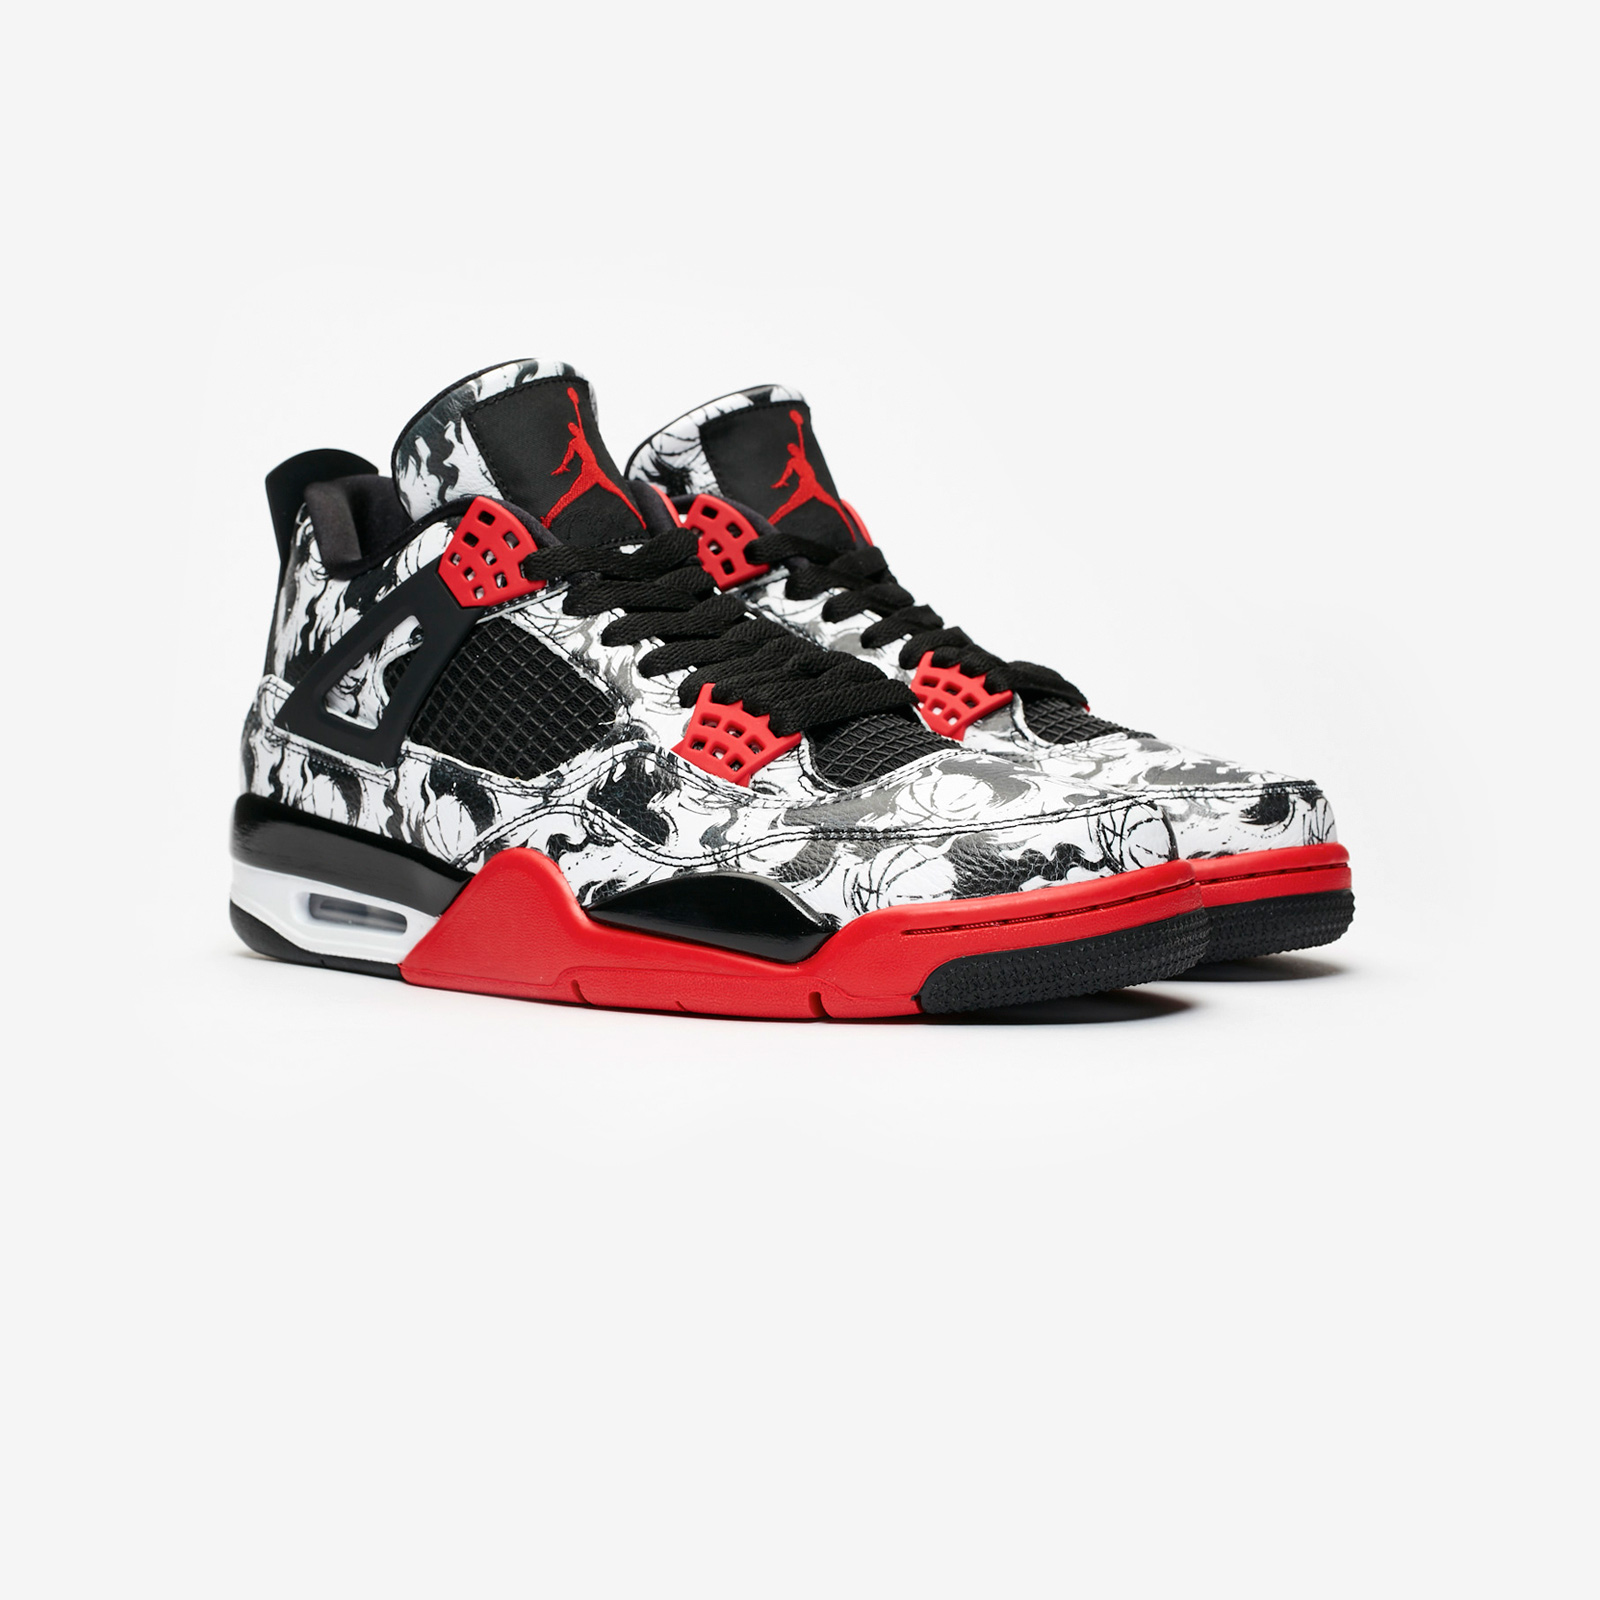 hot sale online 8a7a6 d5a13 Jordan Brand Air Jordan 4 Tattoo